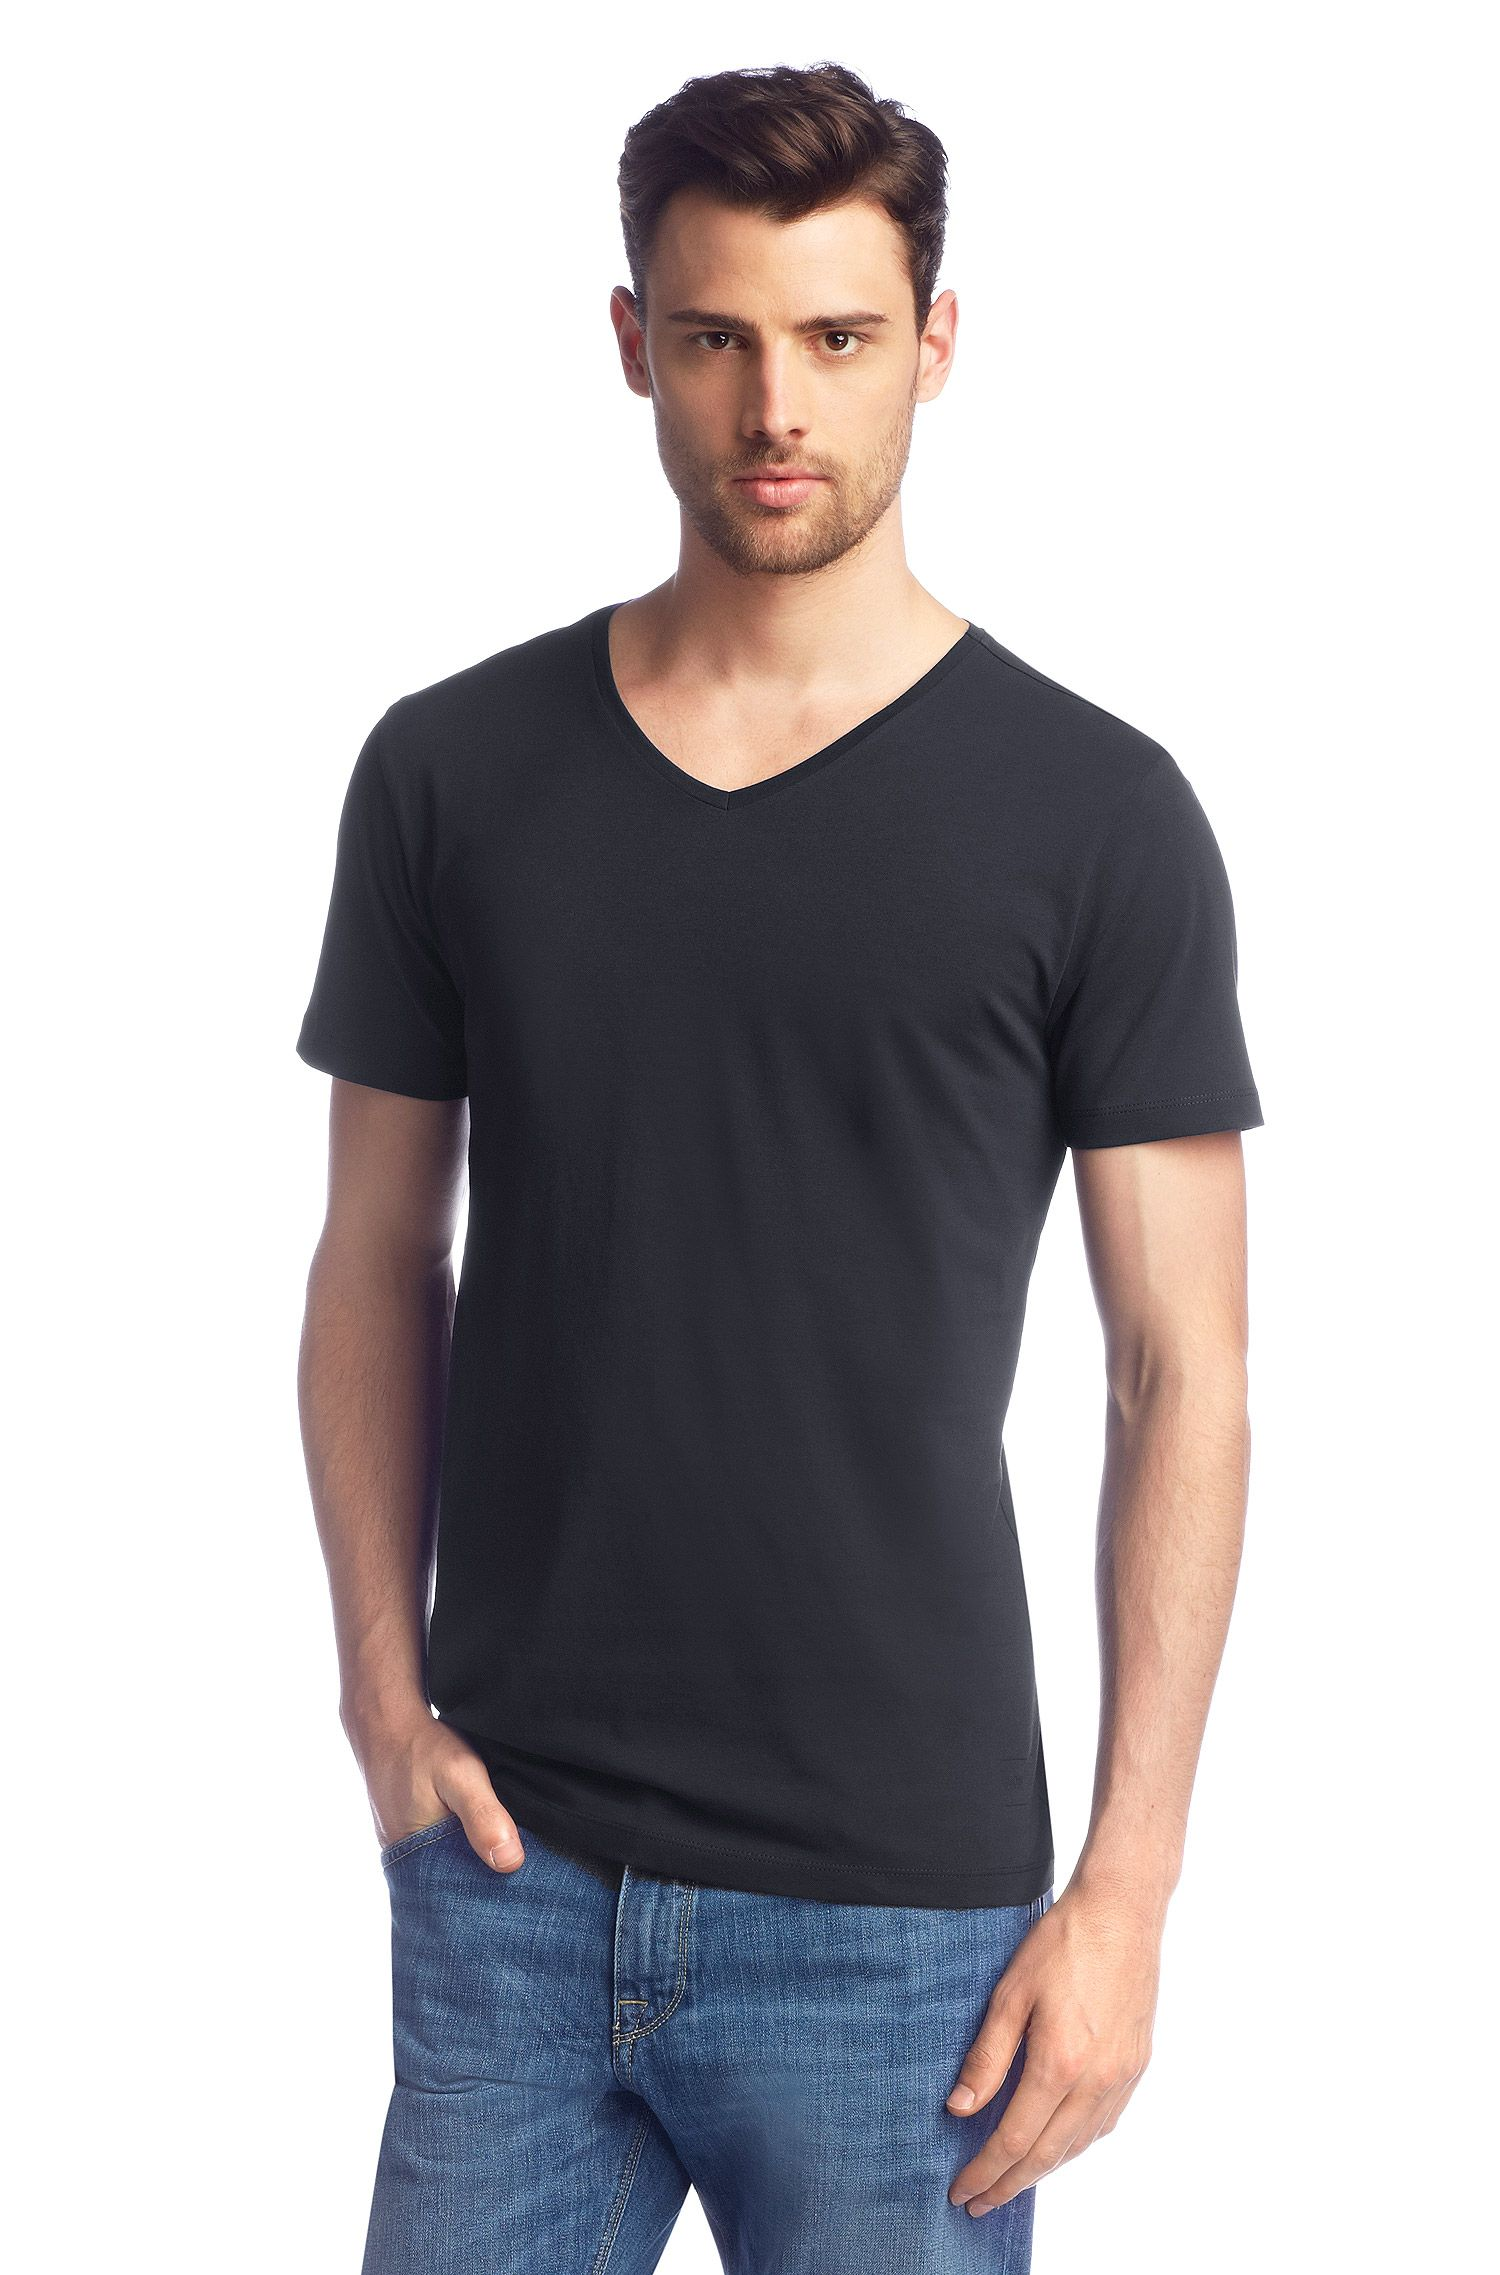 T-Shirt ´Canistro 80 Modern Essential`